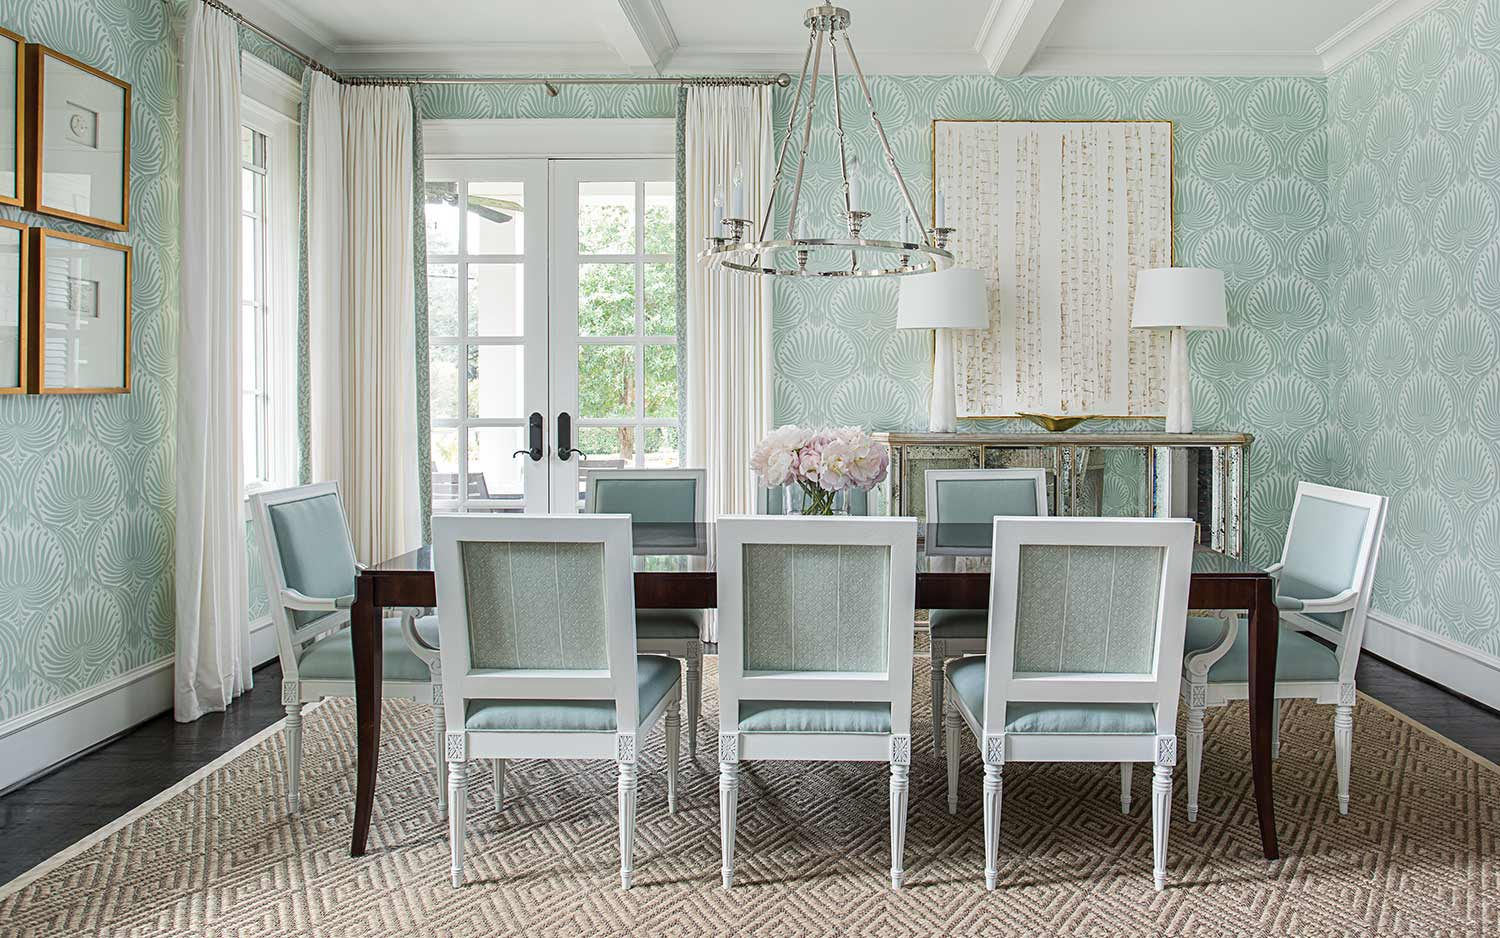 Inspired Design:Sumptuous and Serene